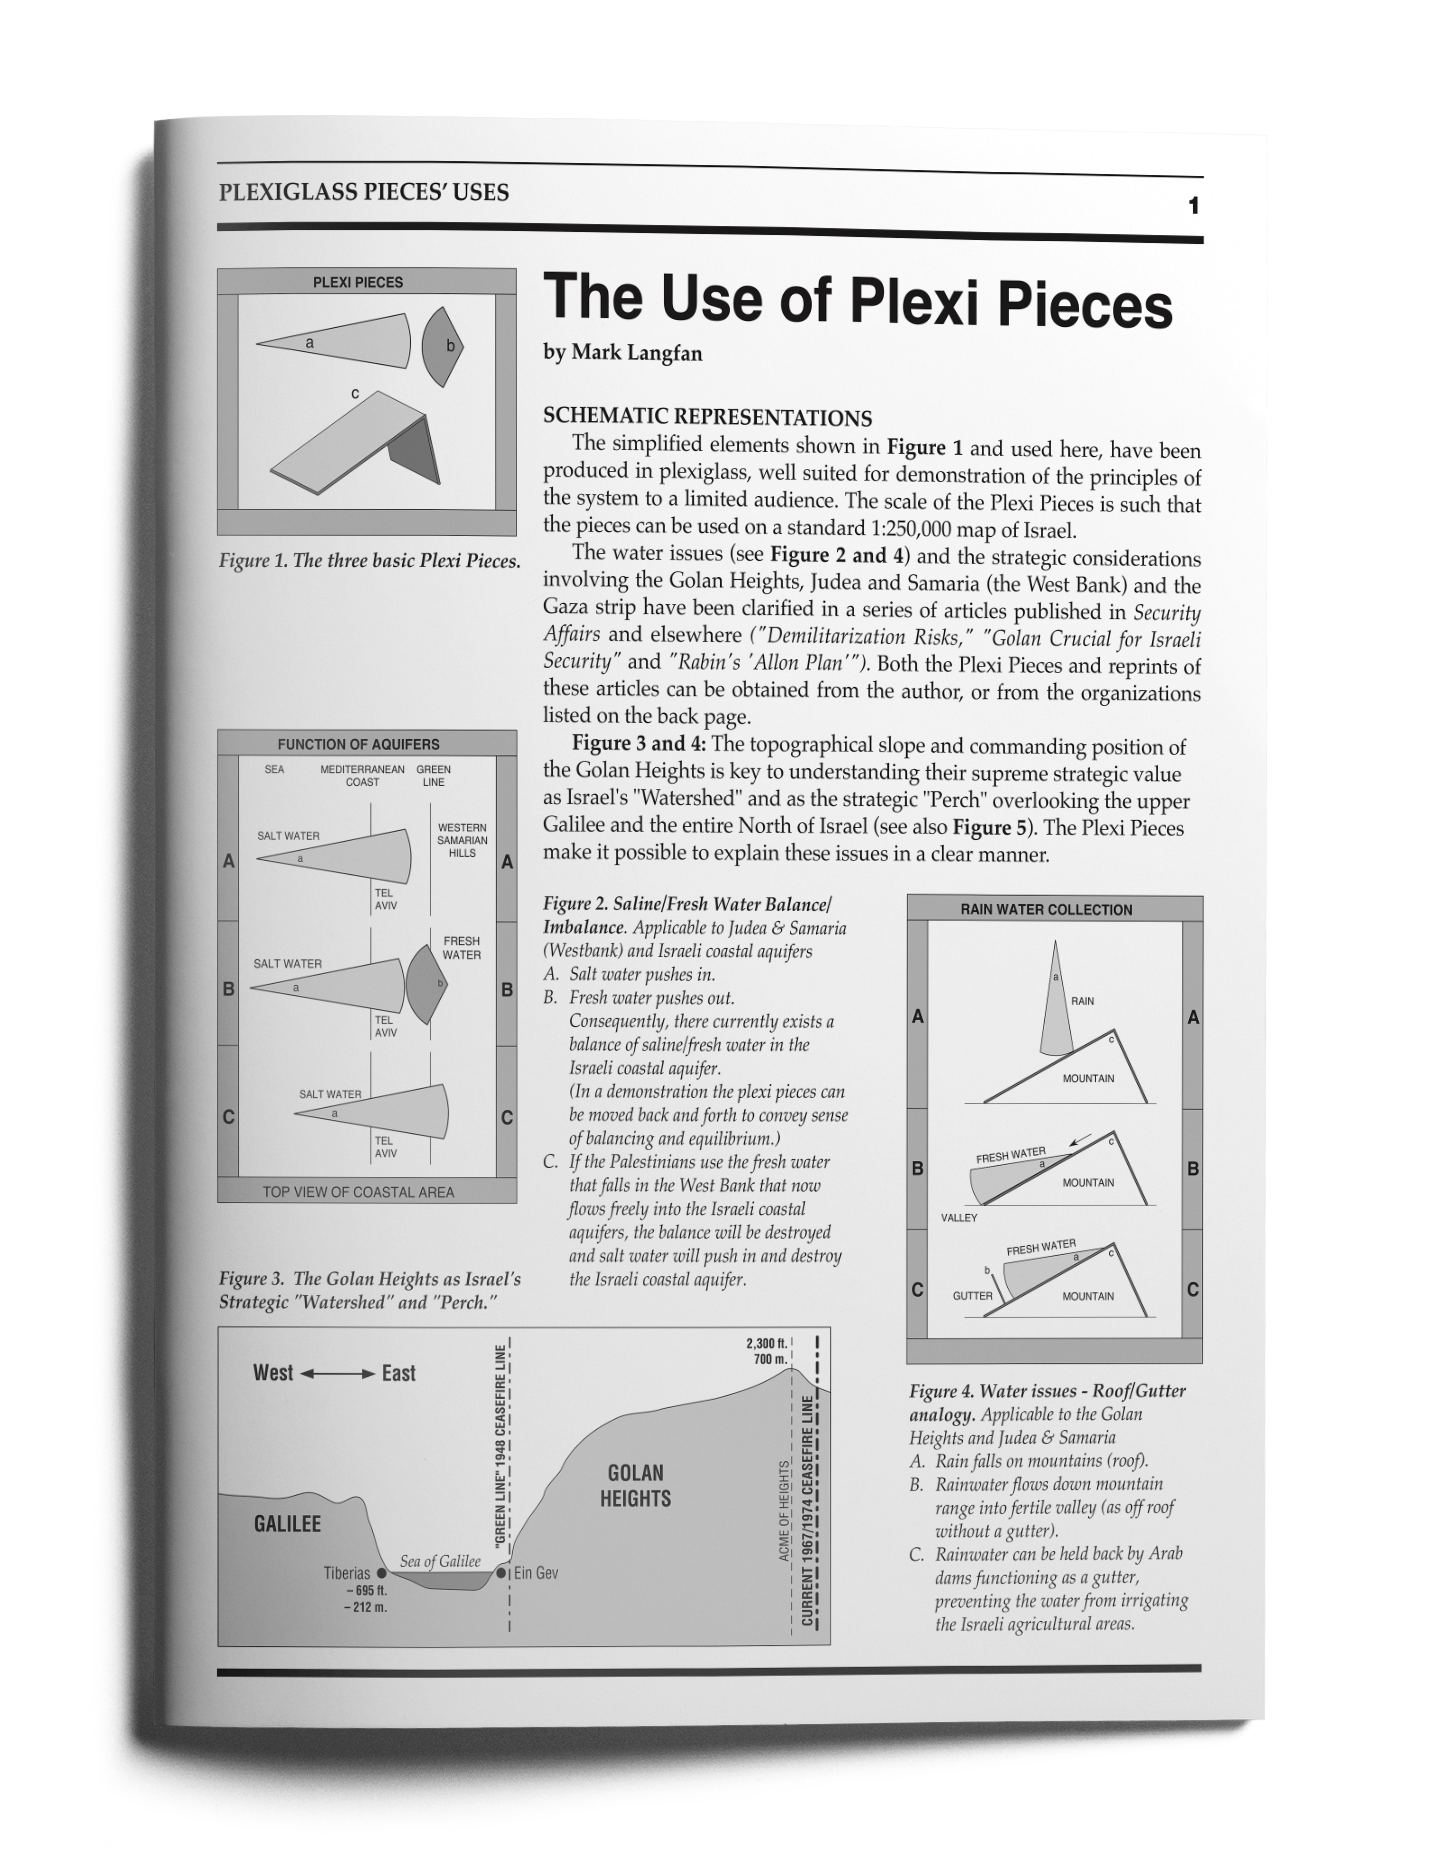 the use of plexi pieces